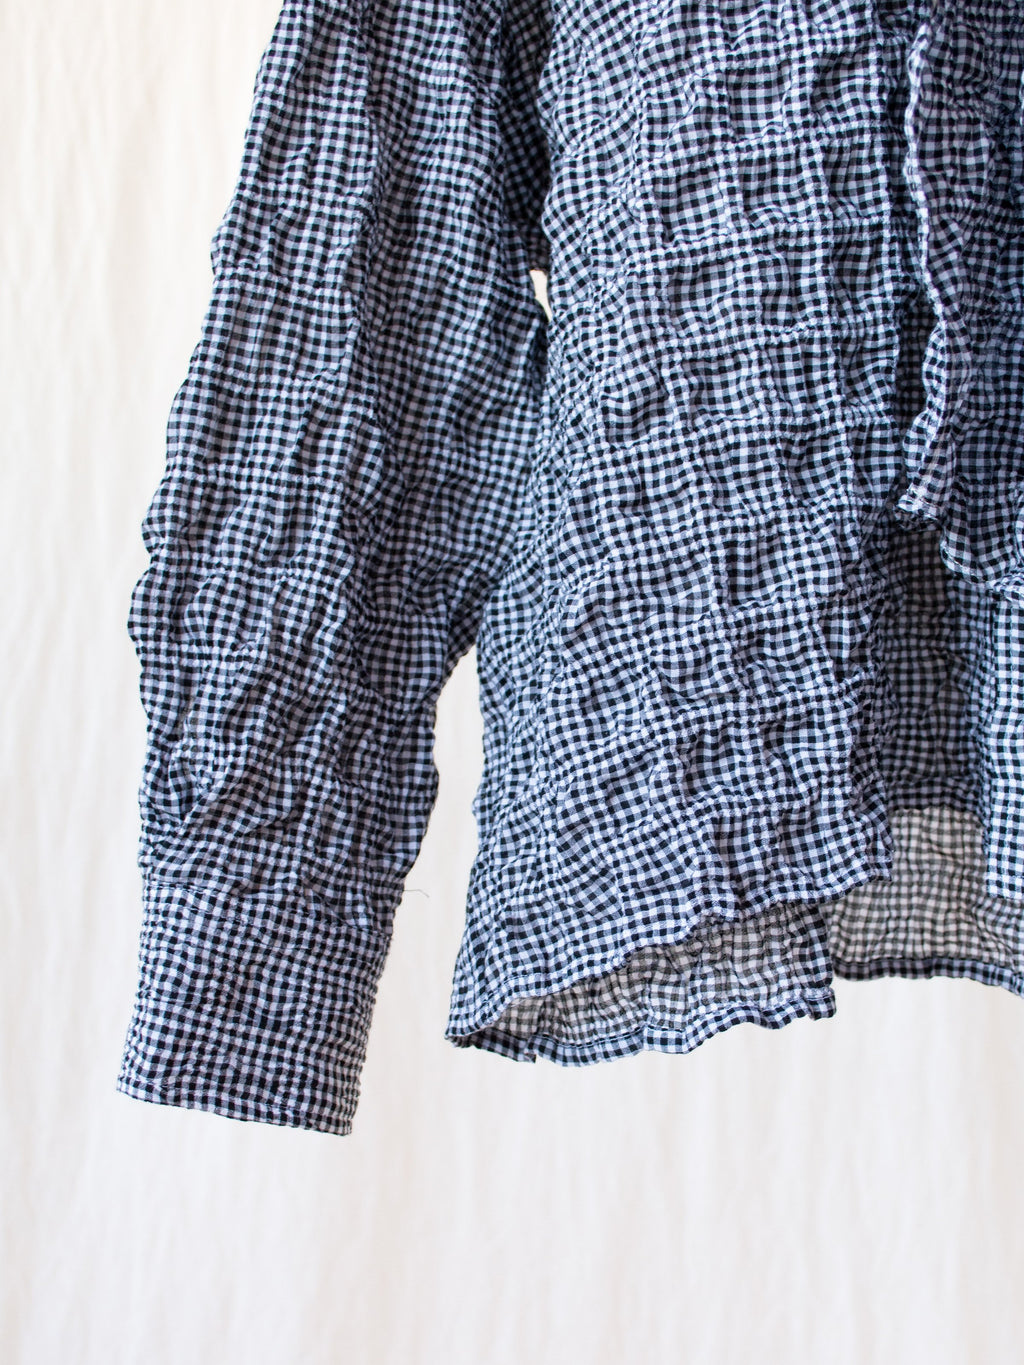 Namu Shop - Caron Callahan Daisy Shirt - Black Gingham